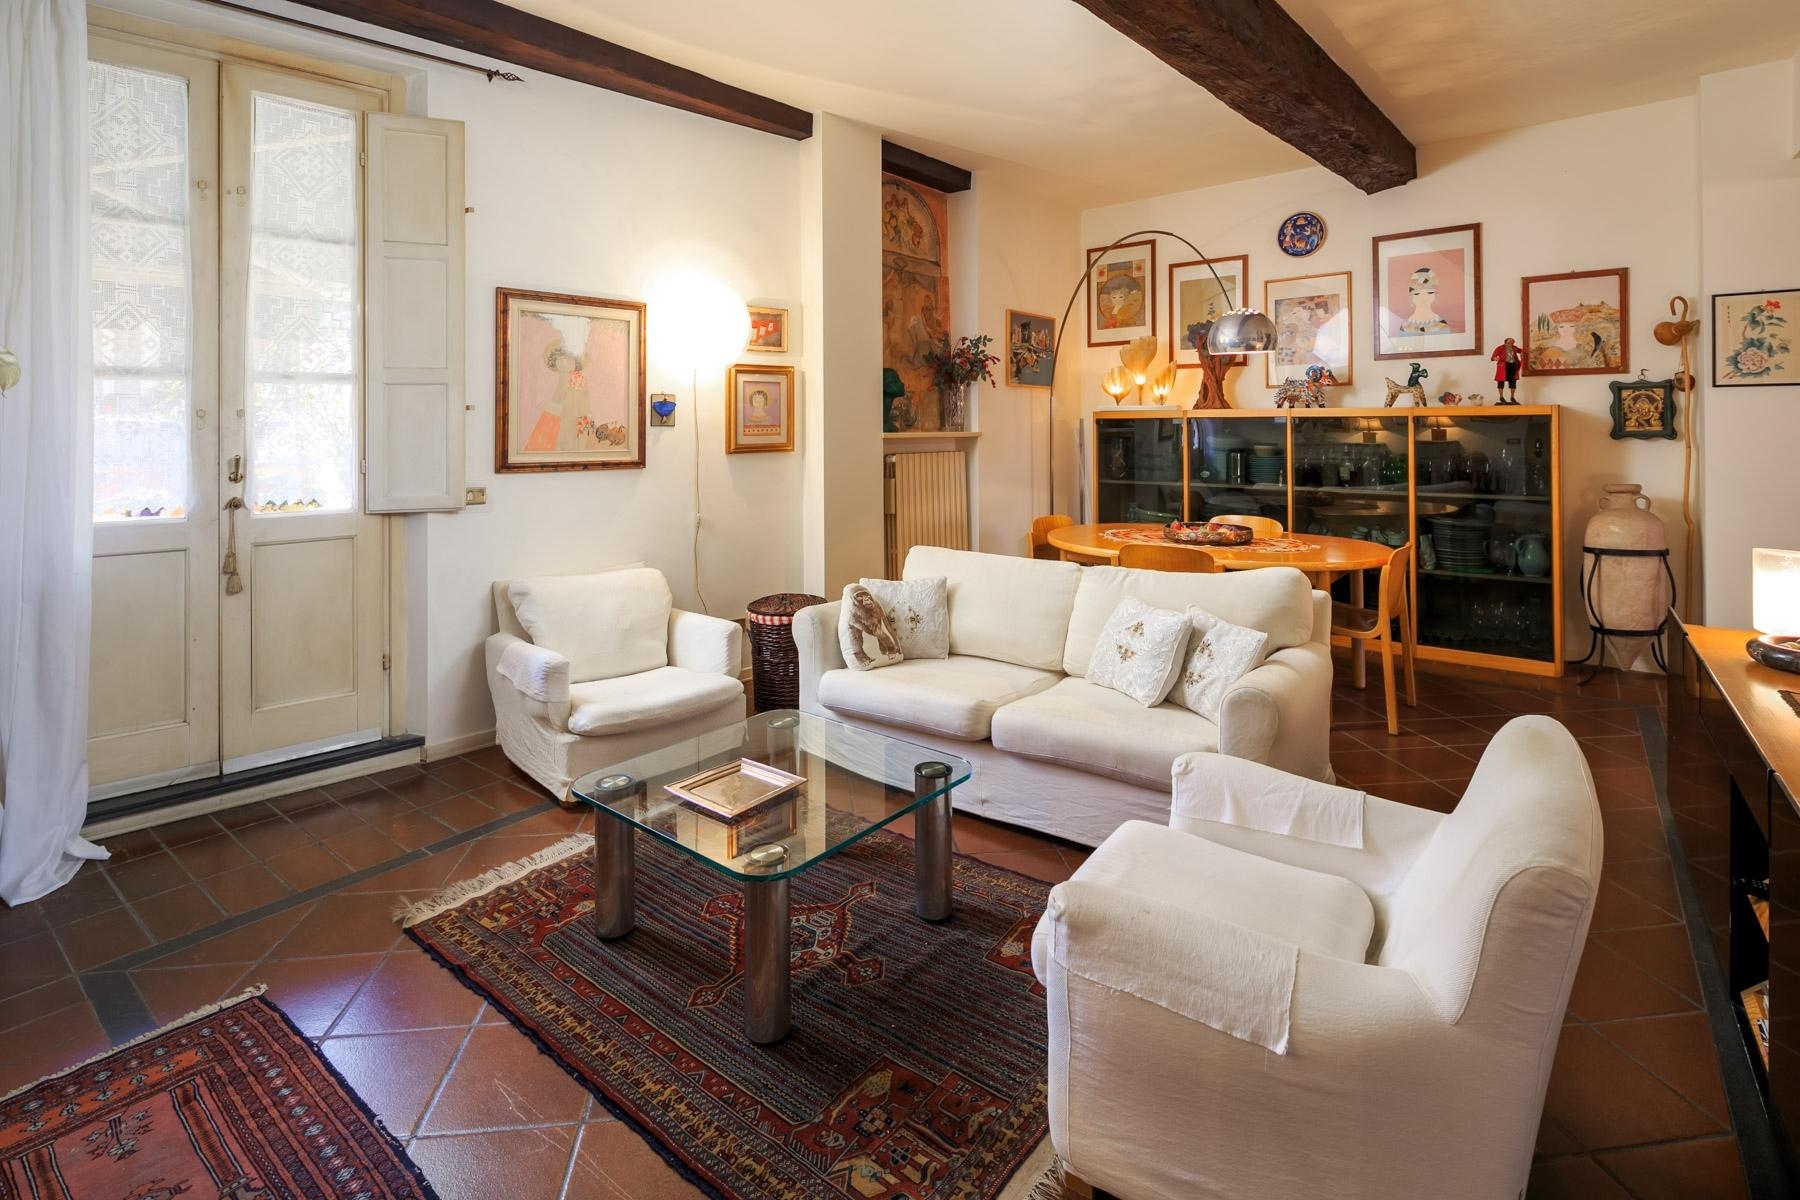 Beautiful apartment in the heart of Lucca - 10